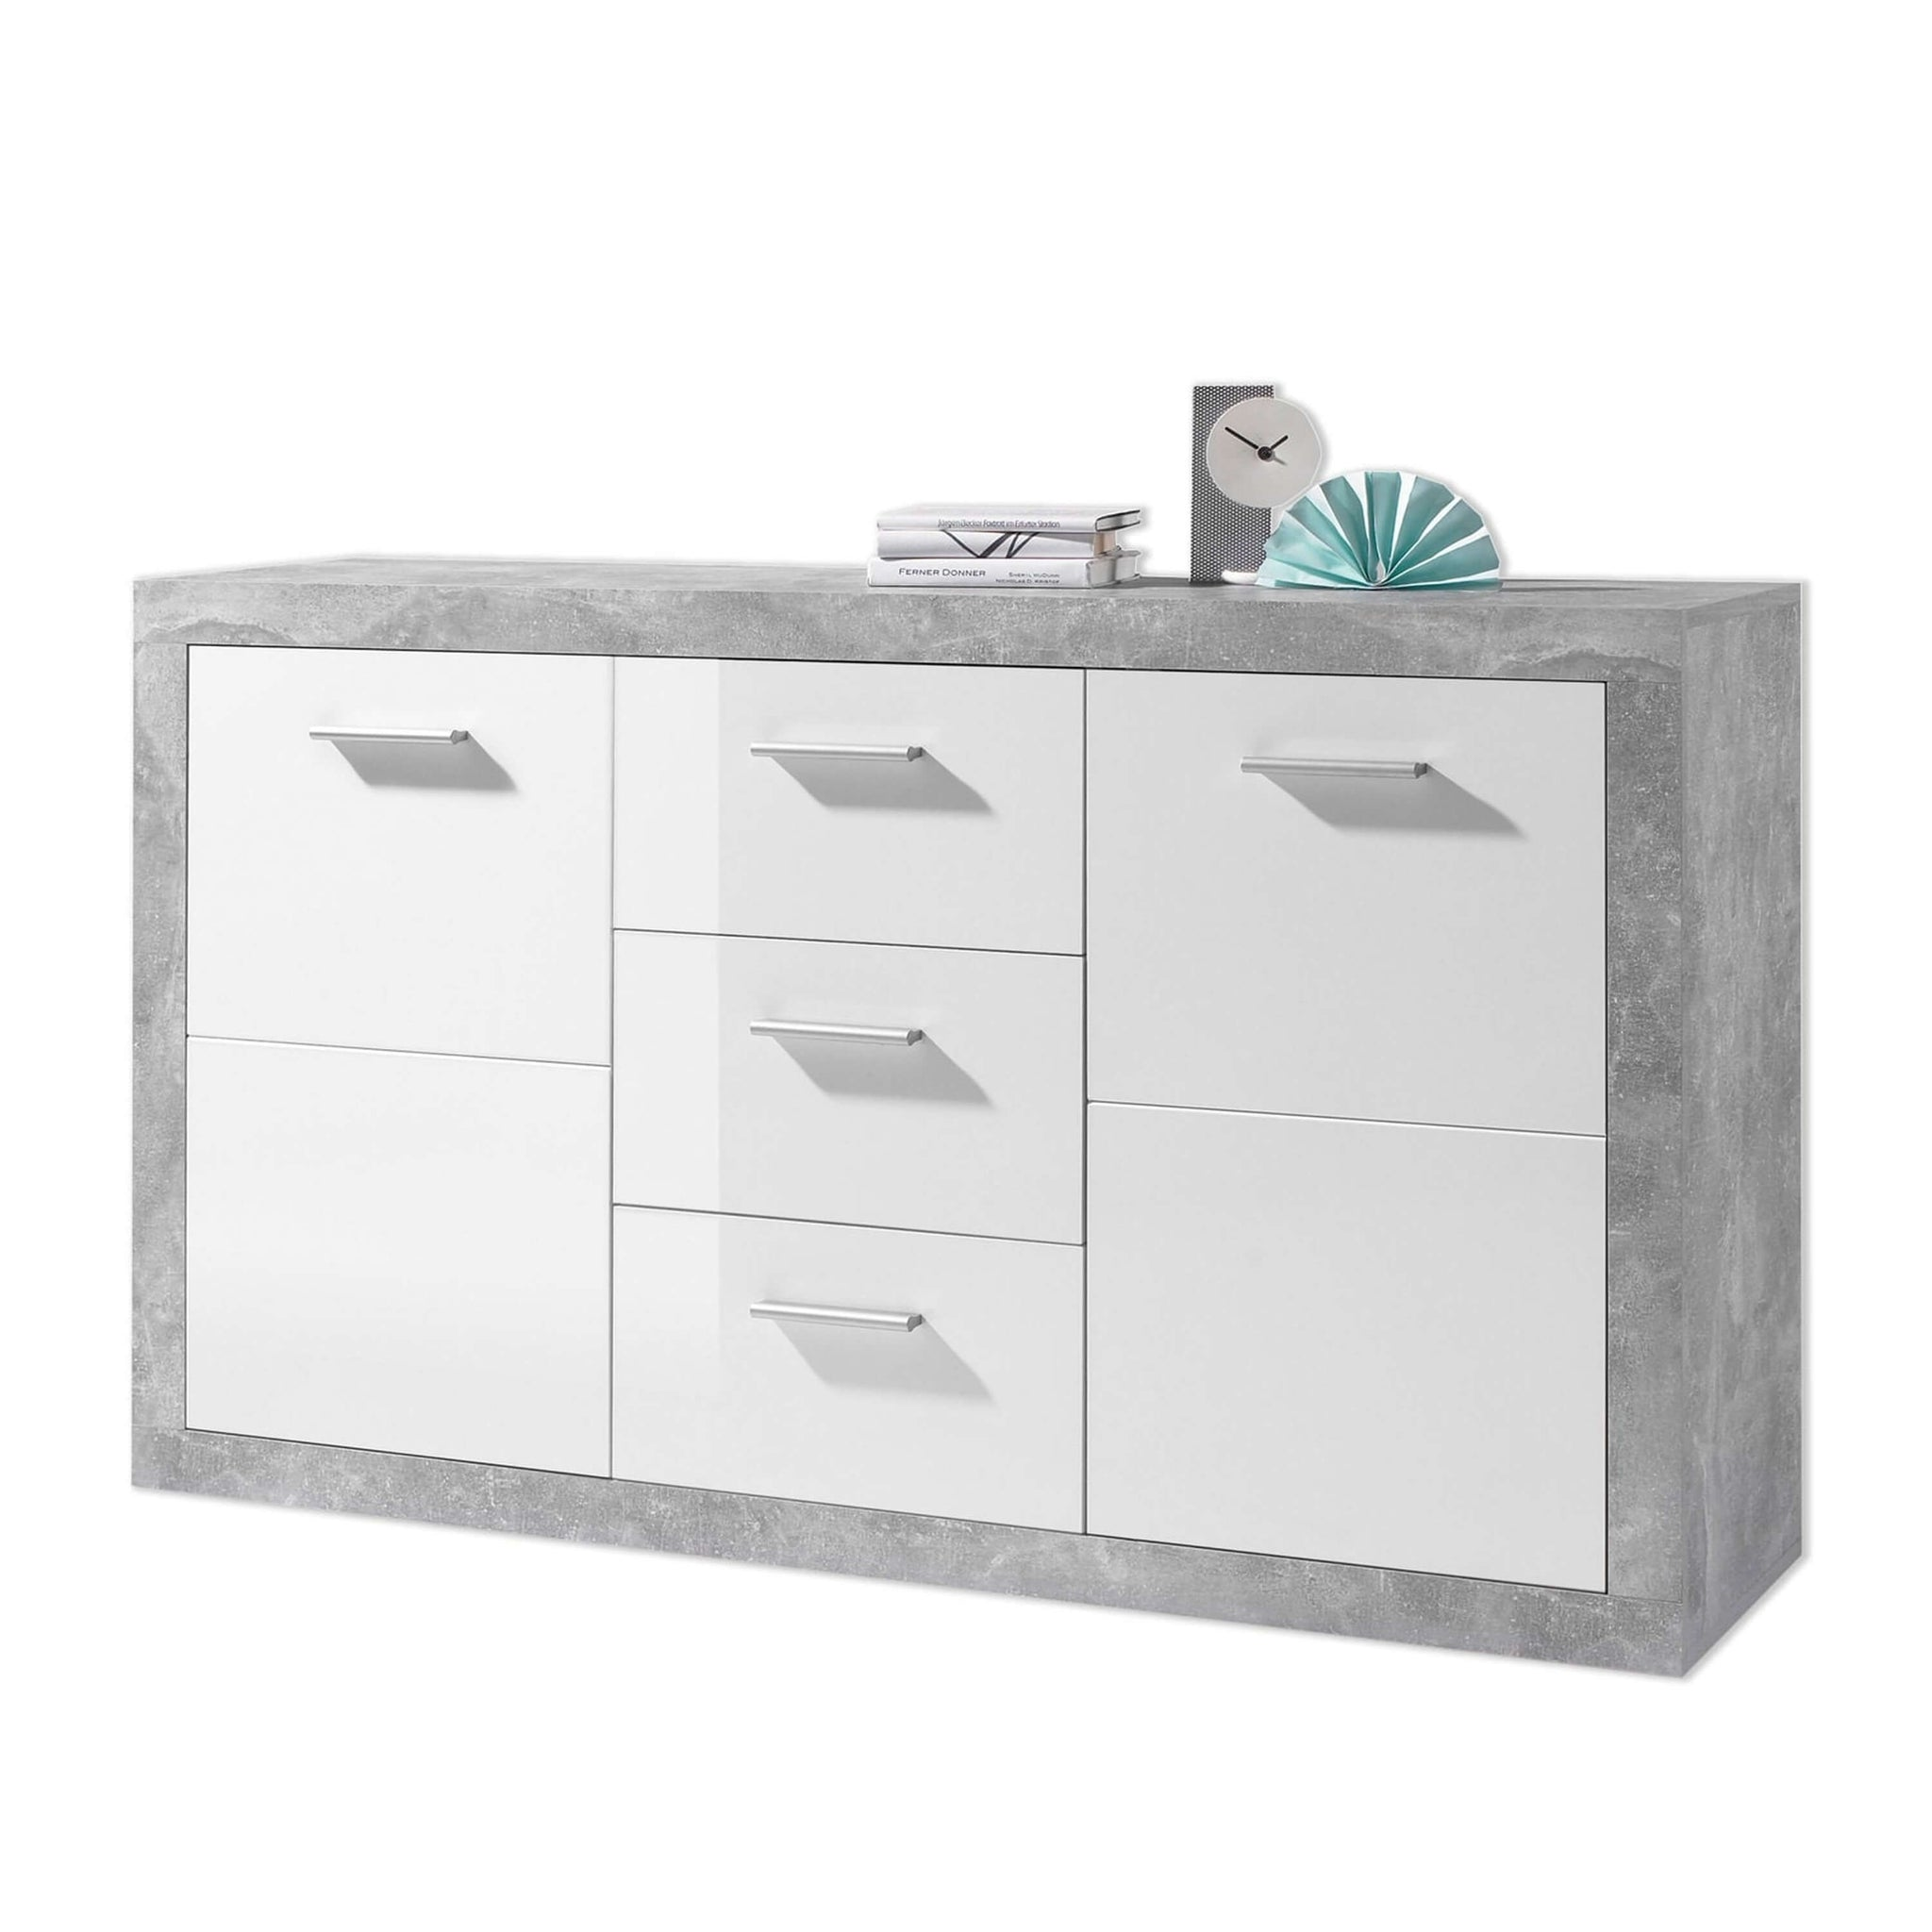 Sofia Large Sideboard Grey and White Gloss 2 Door, 3 Draw